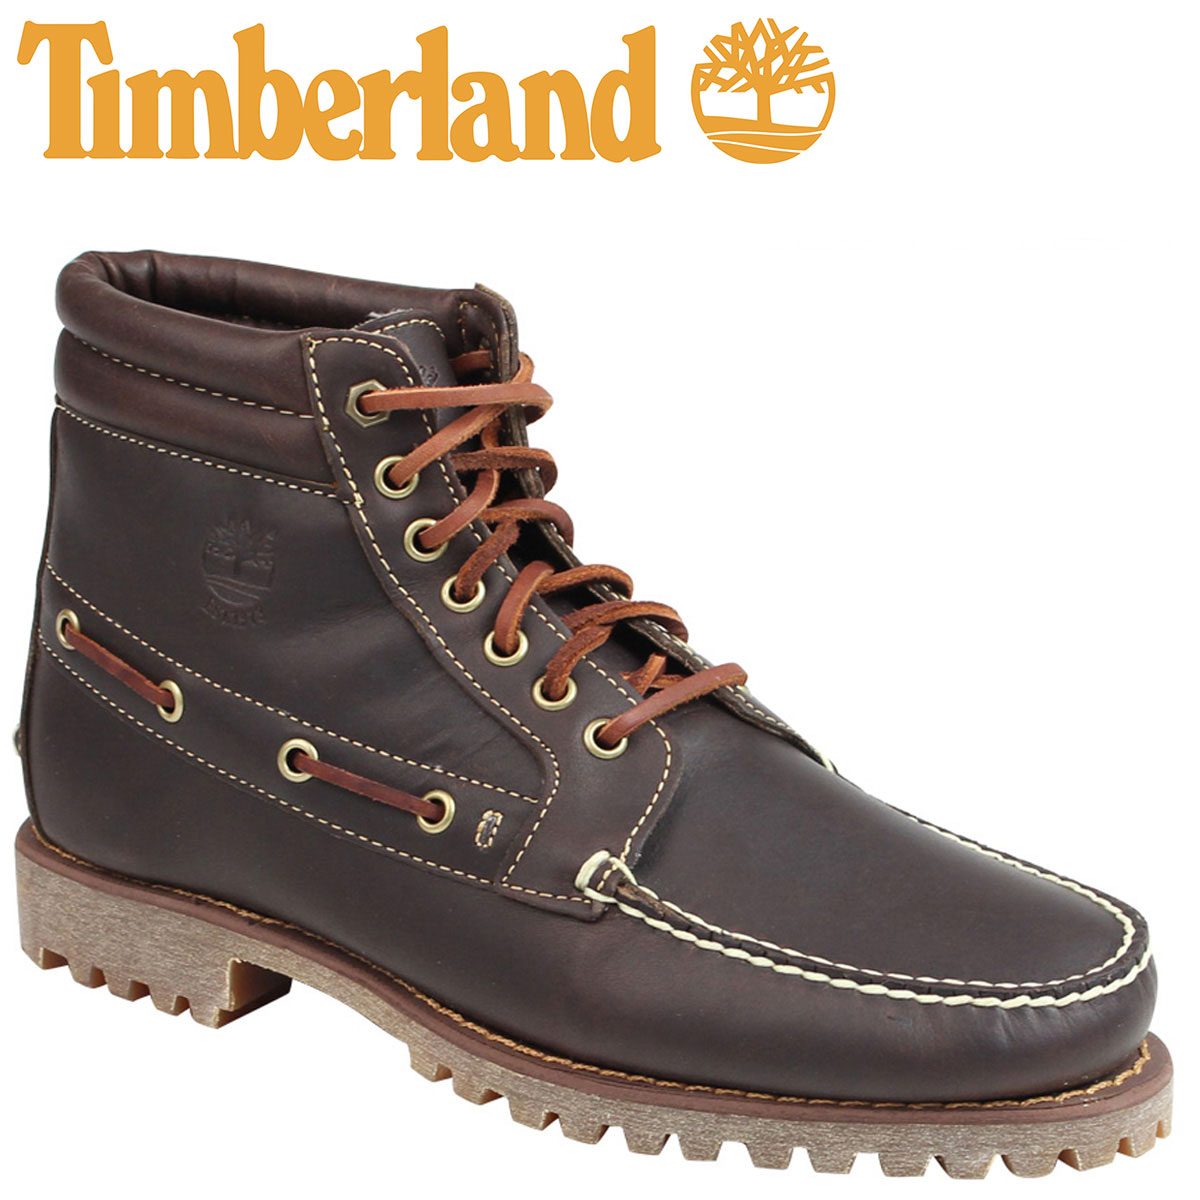 7 Timberland Timberland PENDLETON AUTHENTICS 7 EYE CHUKKA chukka boots authentic アイチャッカ A13F1 W Wise dark brown men